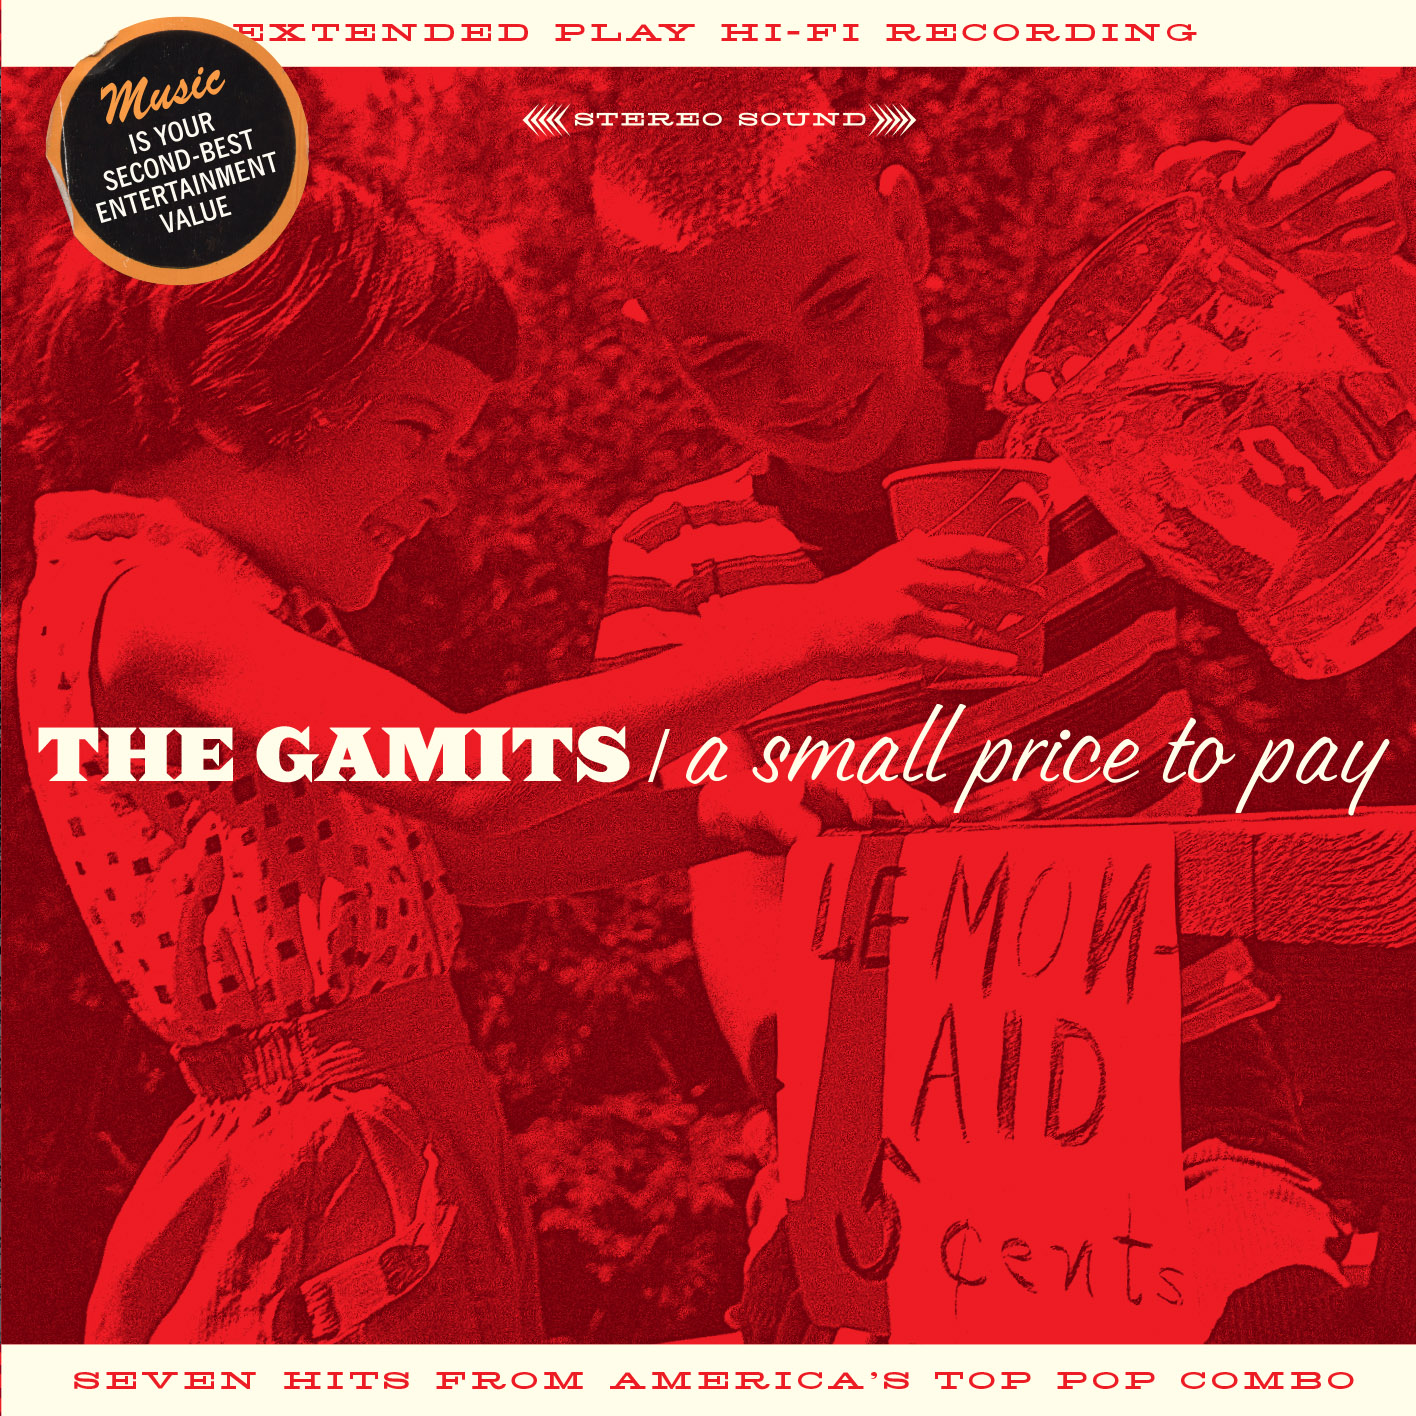 The Gamits - A Small Price to Pay CD cover